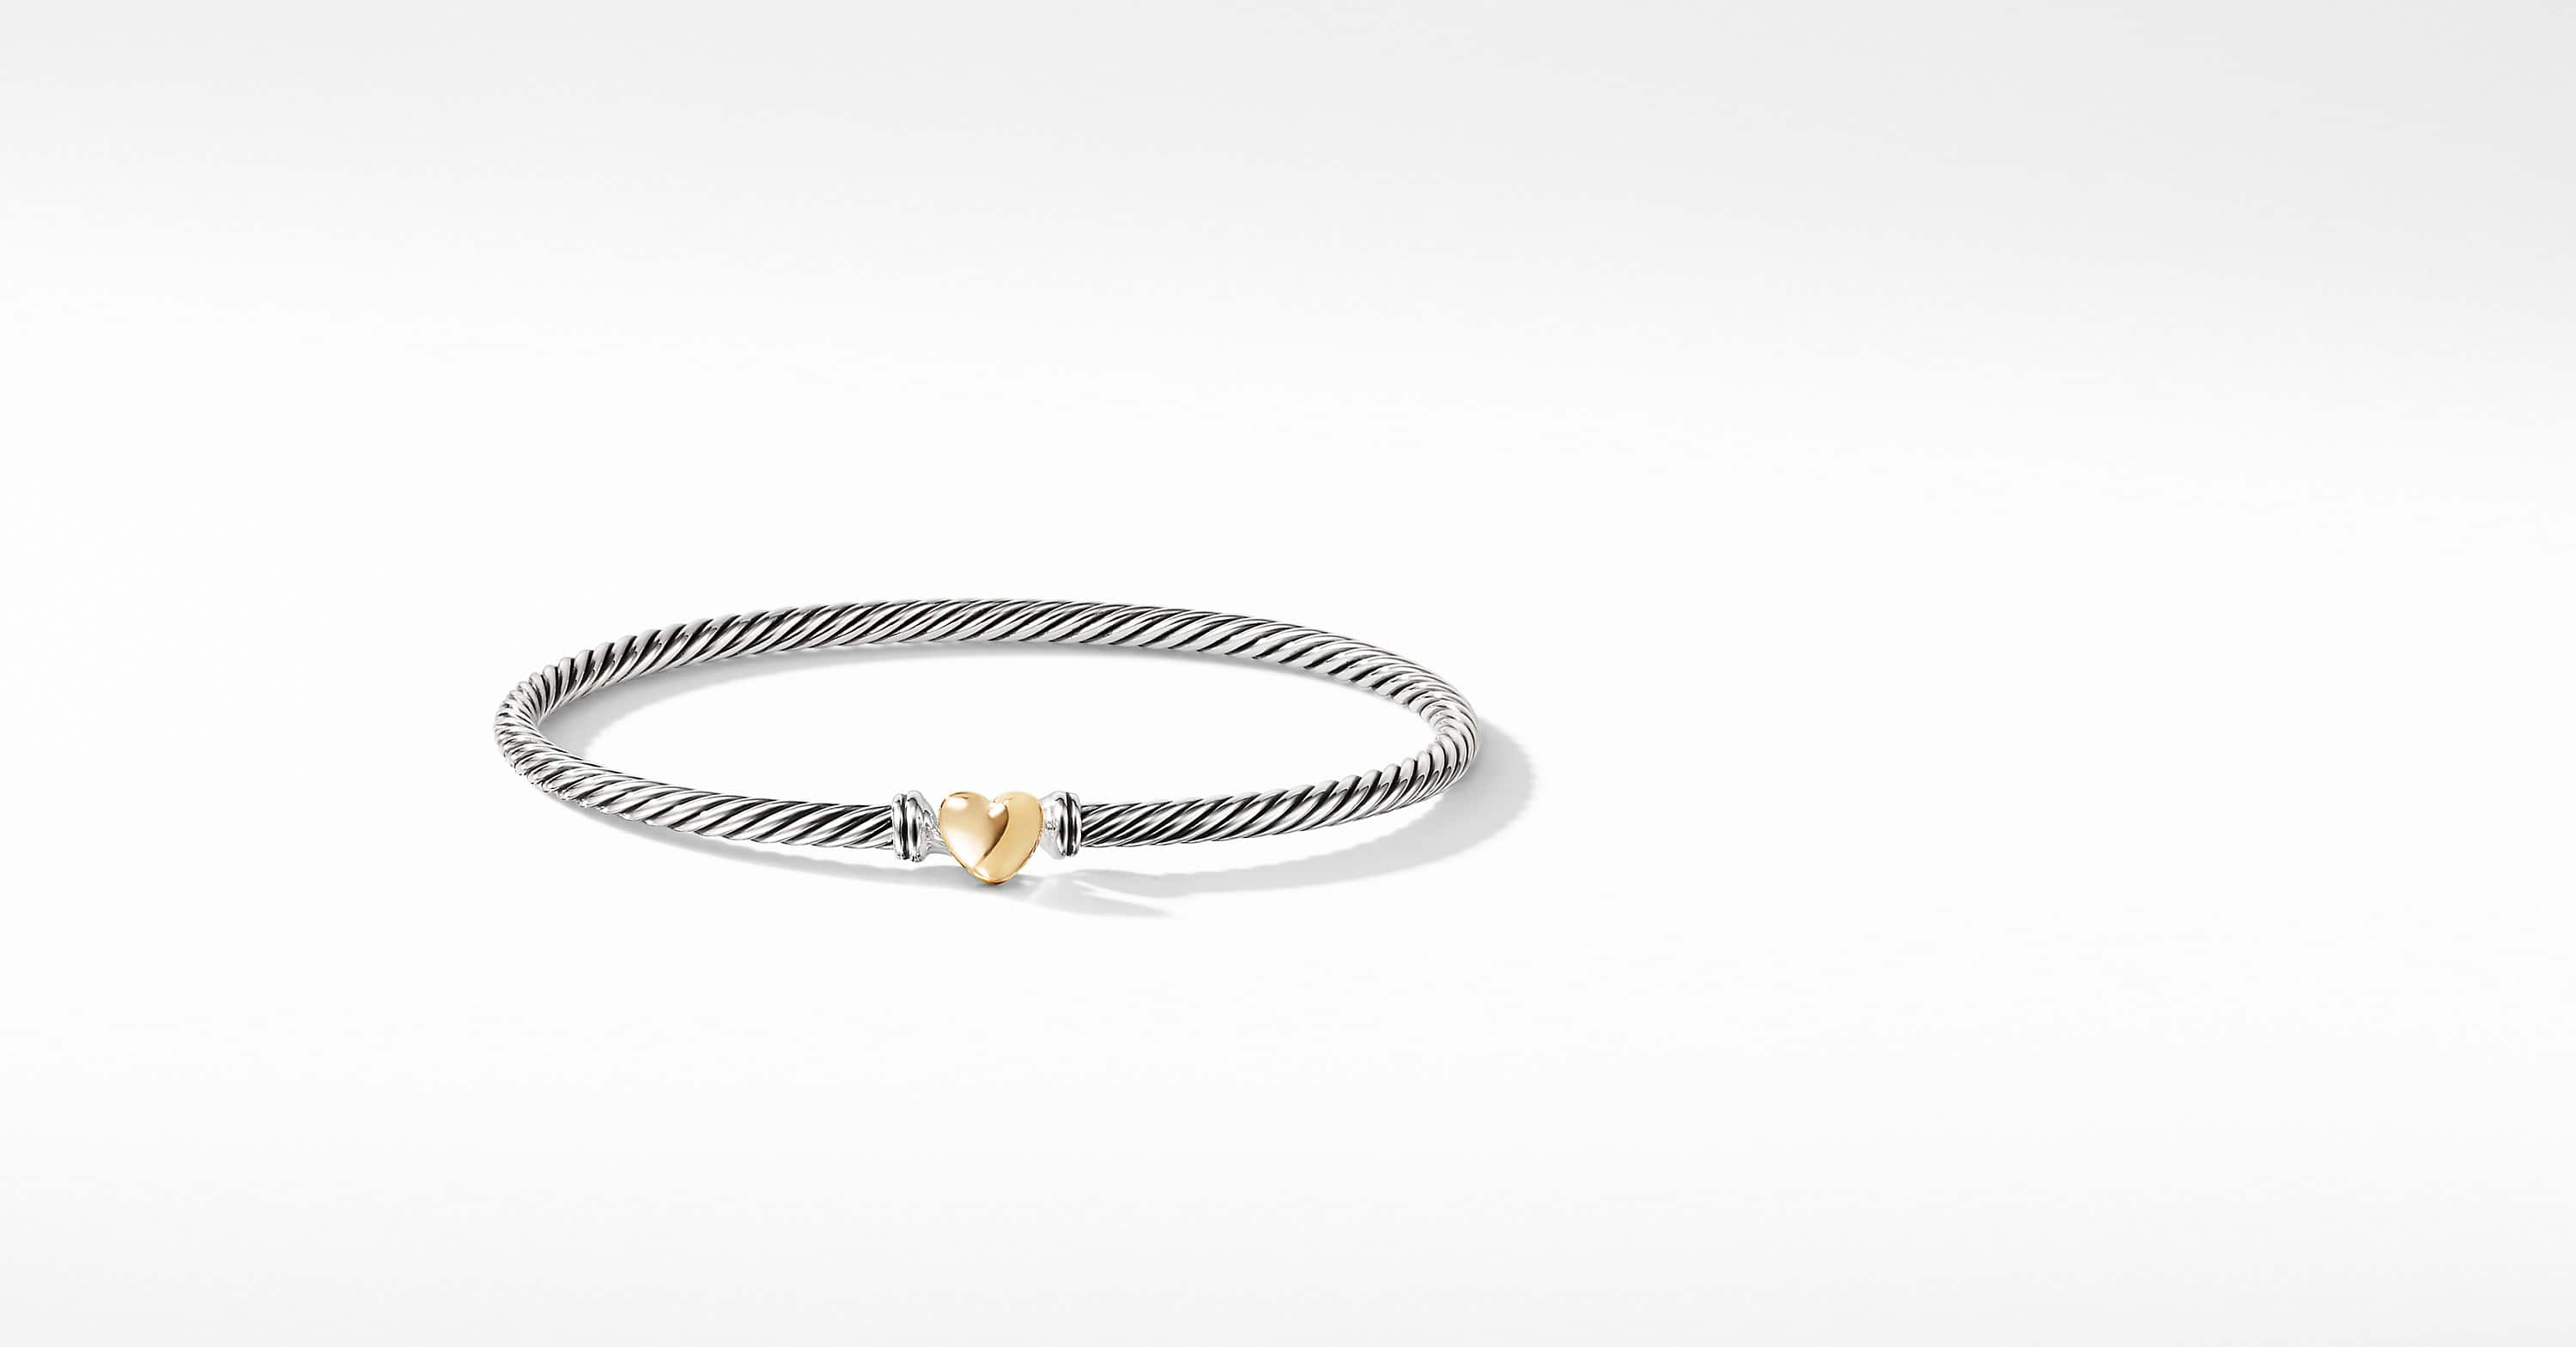 Cable Collectibles Heart Bracelet with 18K Gold, 3mm